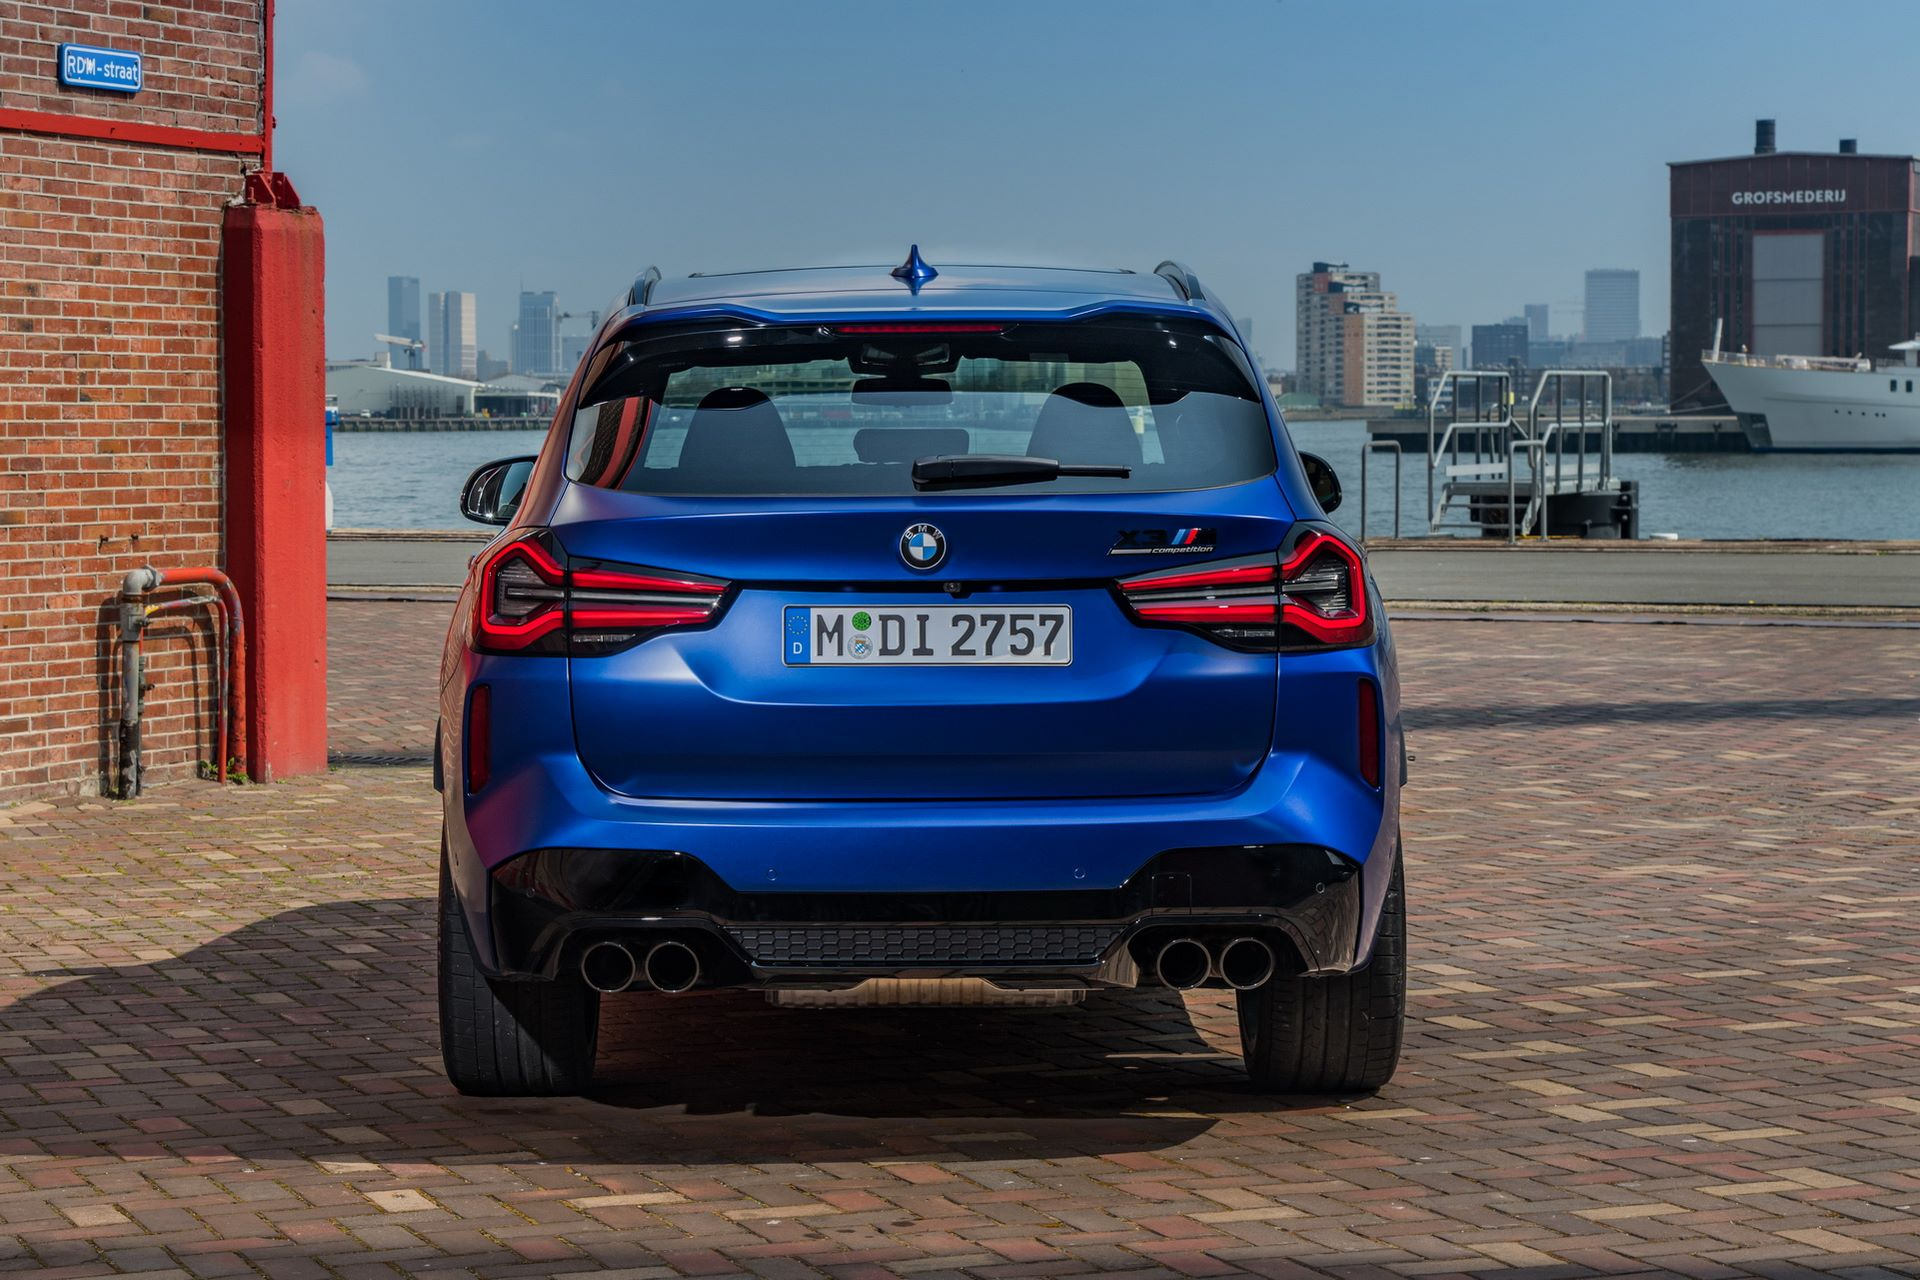 BMW-X3-M-X4-M-Competition-94